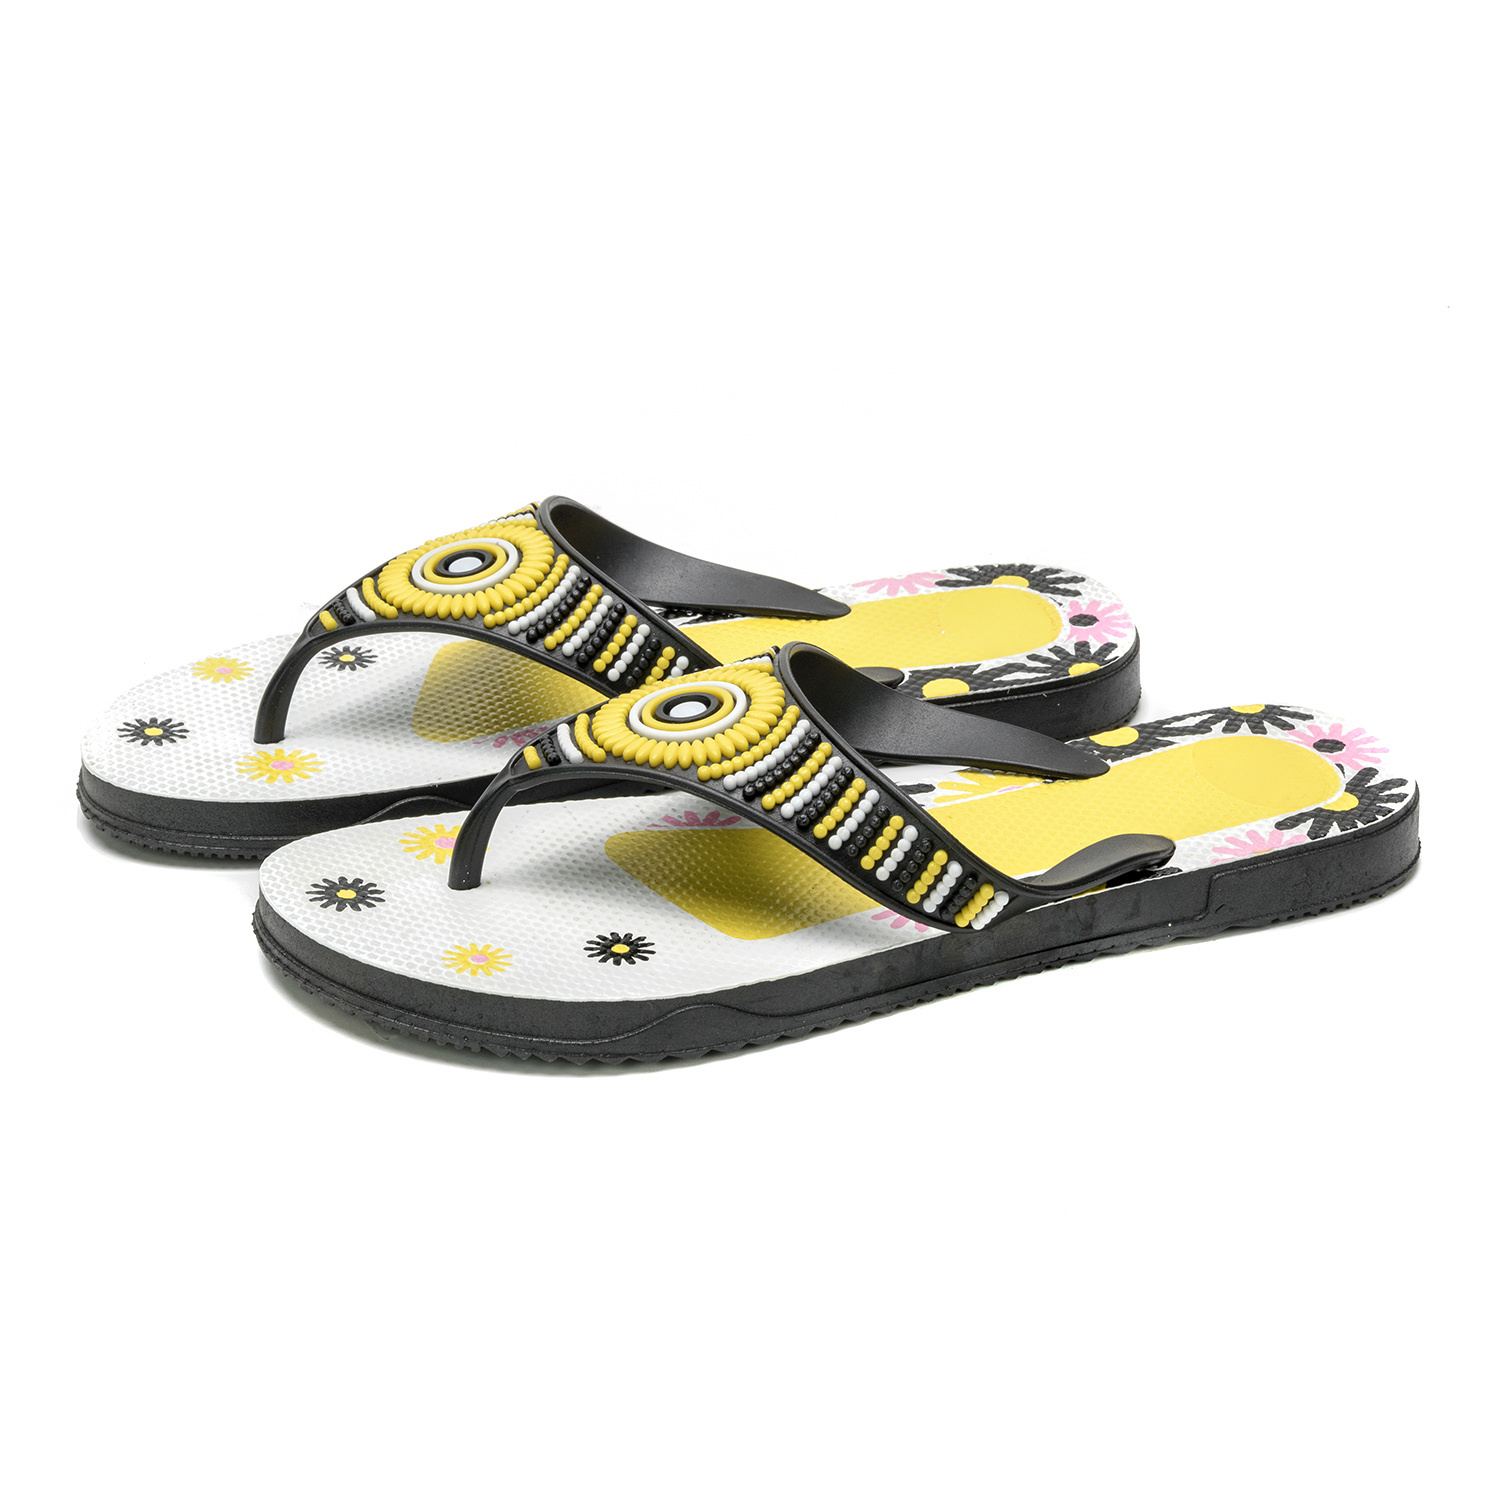 Woman Sandal with New Hot PVC Colorful Strap pictures & photos